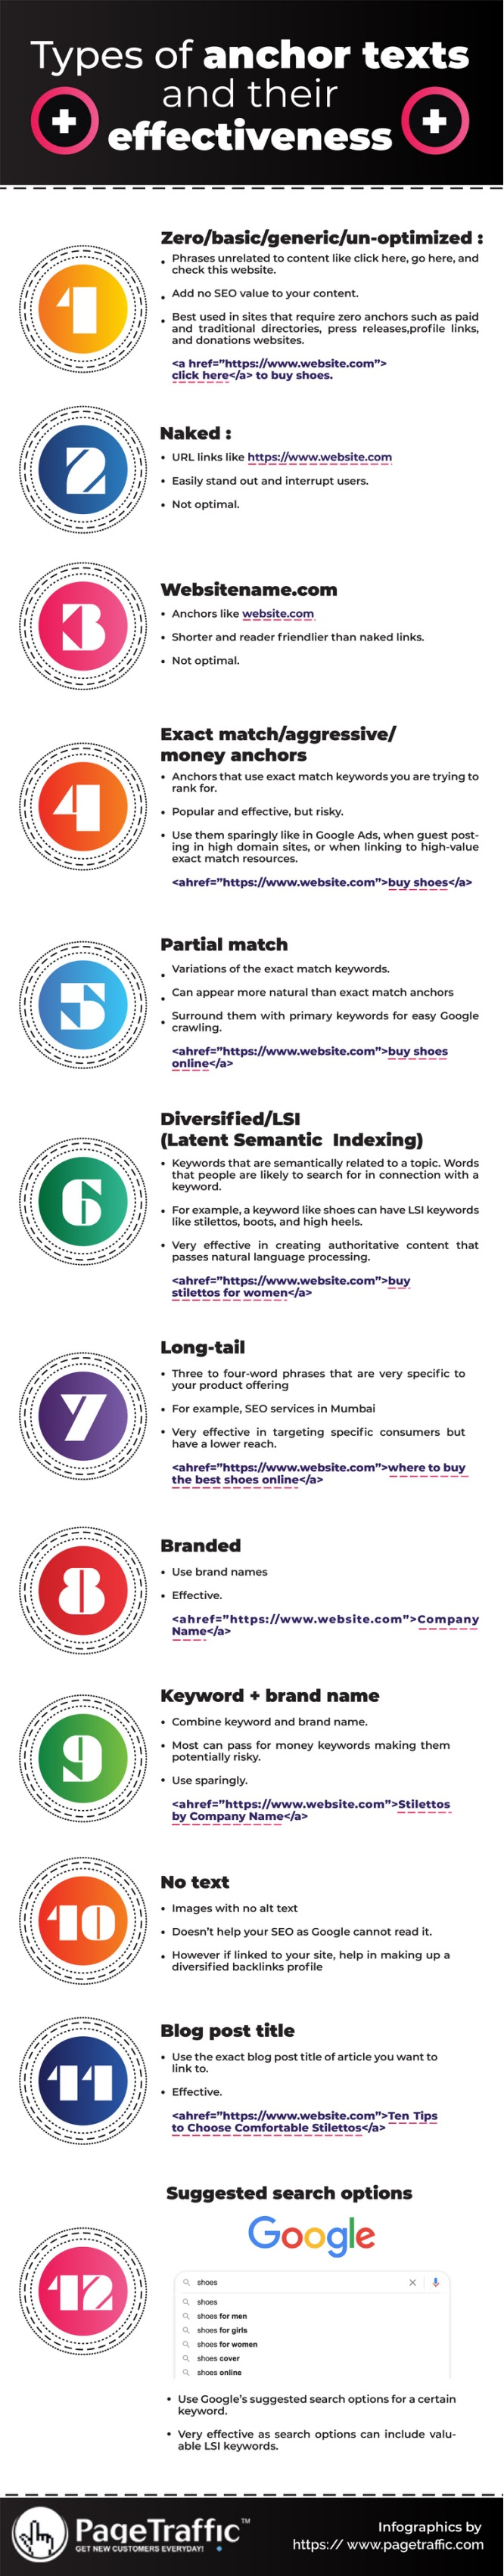 Best Anchor Text Optimization Practices #Infographic